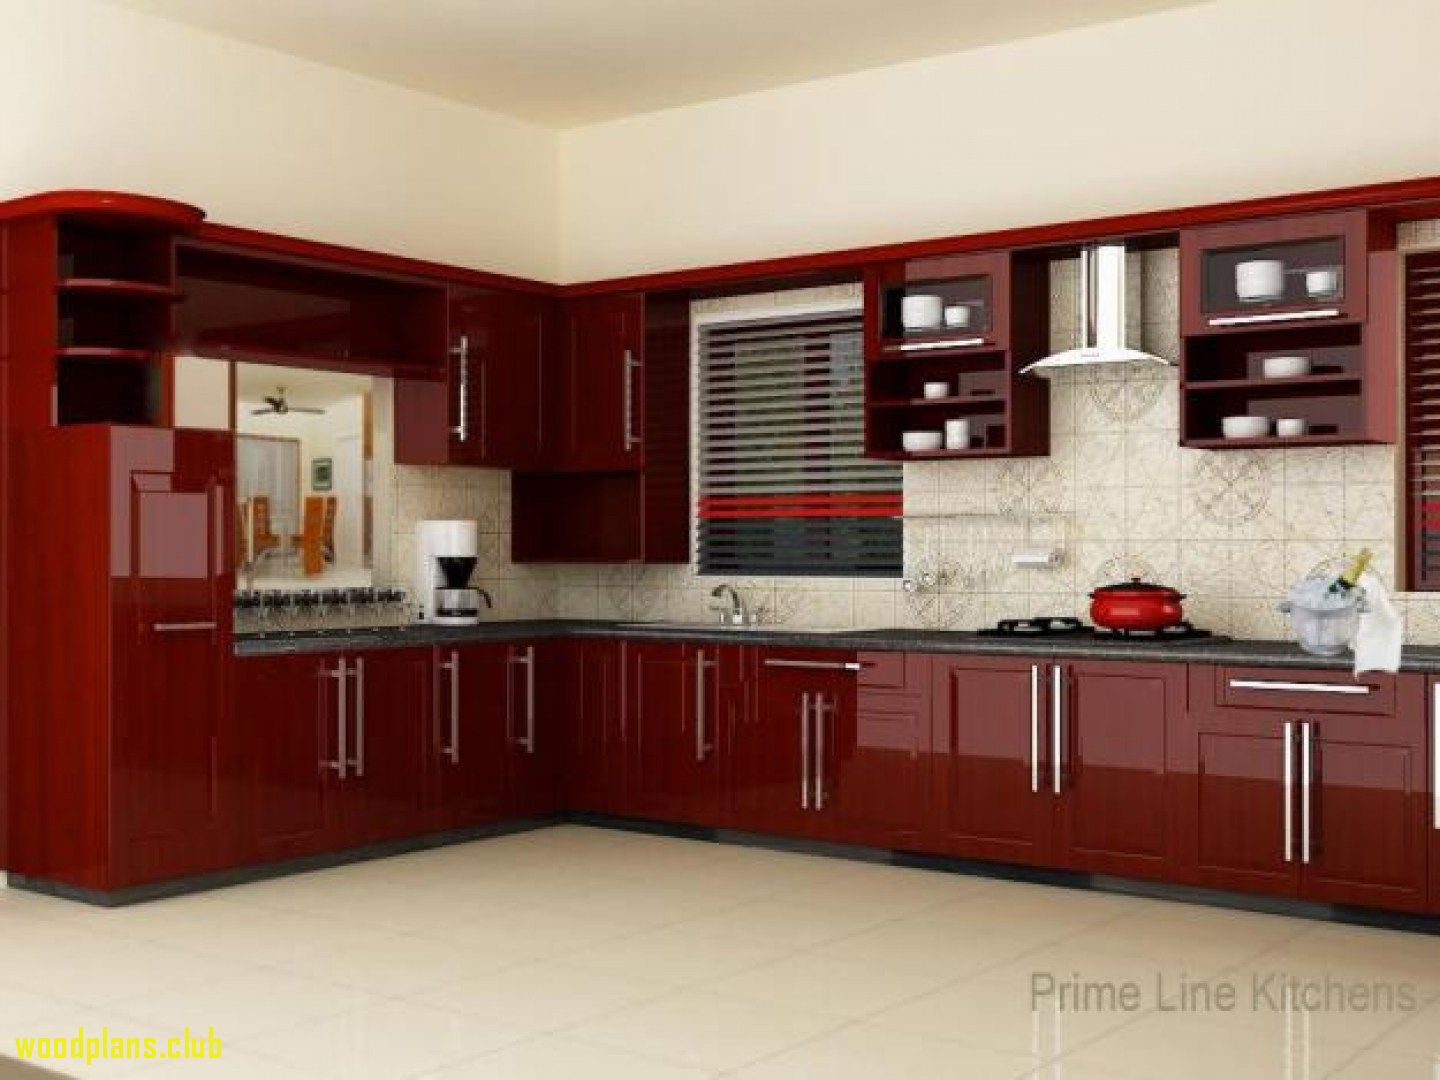 99 Woodwork Designs In Hyderabad Cool Apartment Furniture Check More At Http Glennbeckre Model Kitchen Design Modern Kitchen Design Kitchen Cabinet Styles